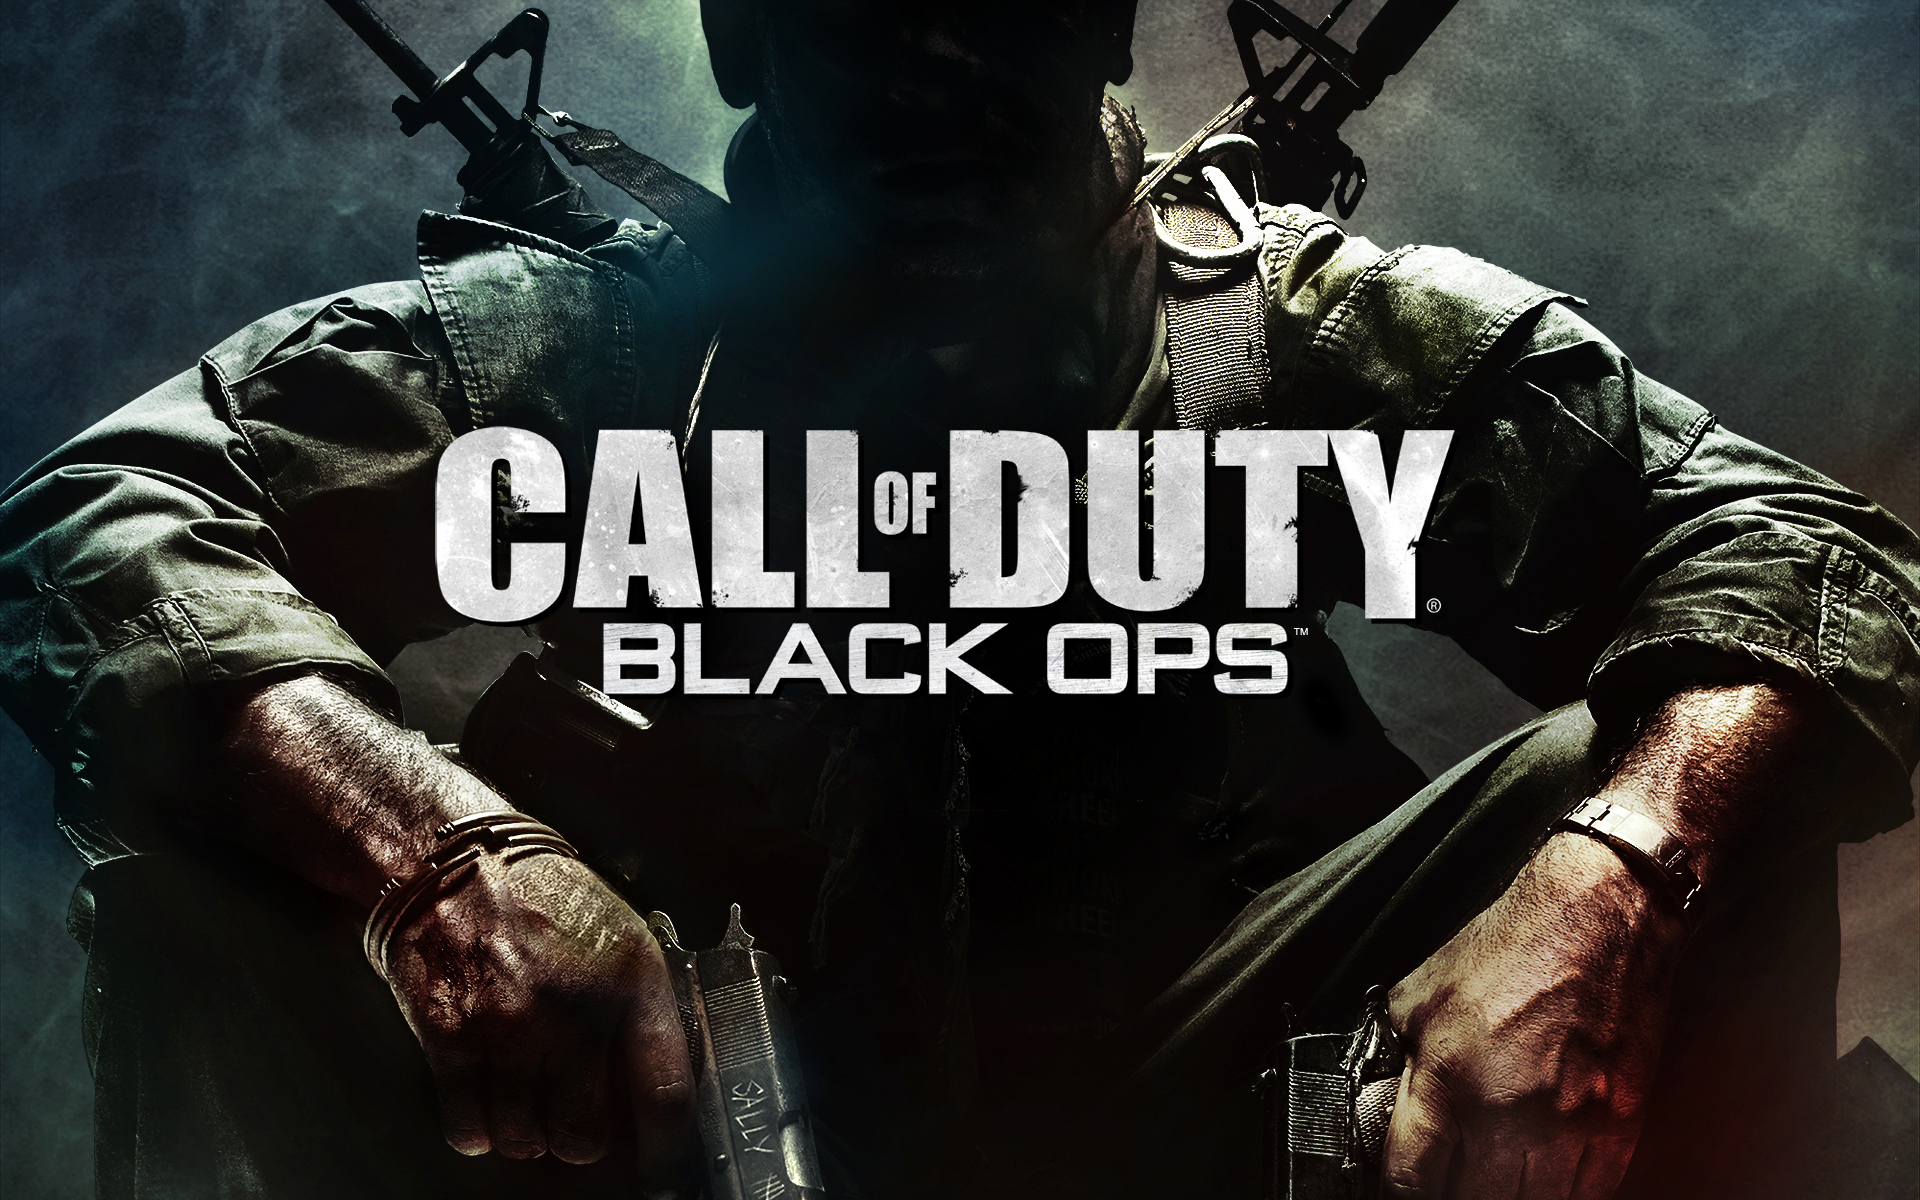 4. Call of Duty: Black Ops